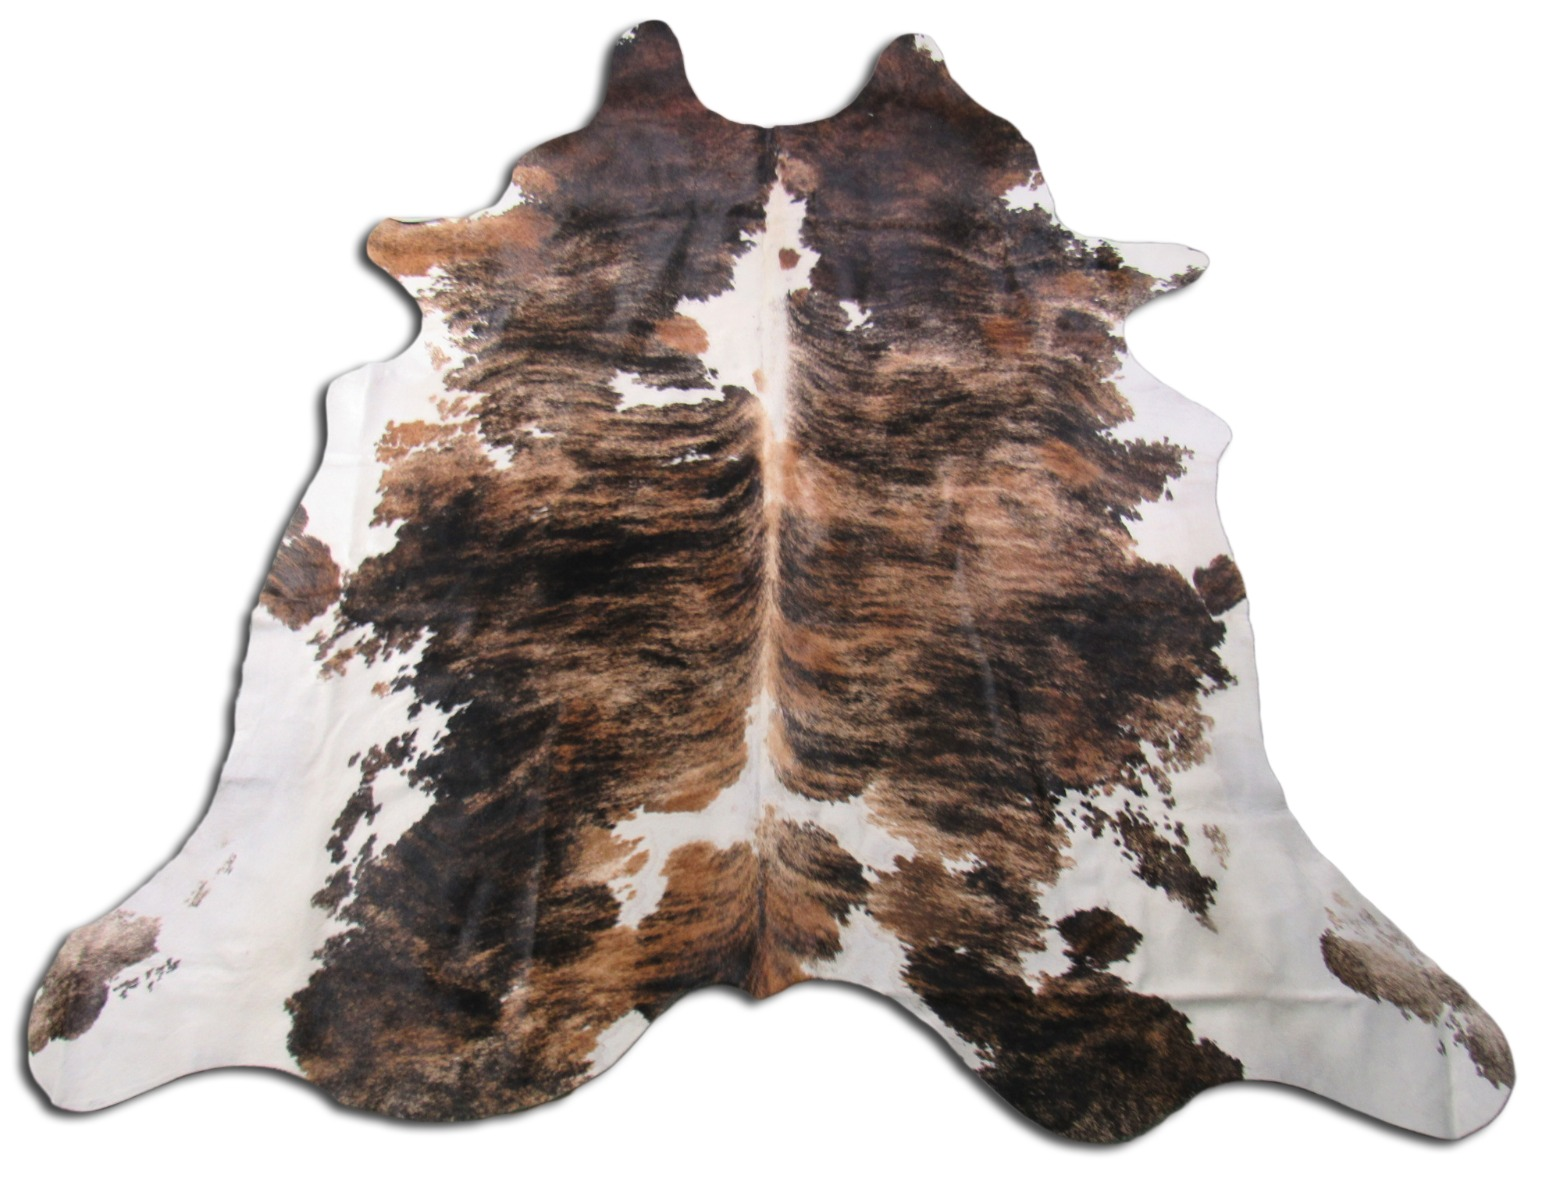 A-1267 Tricolor Speckled Cowhide Rug Size: 7 1/2' X 7'